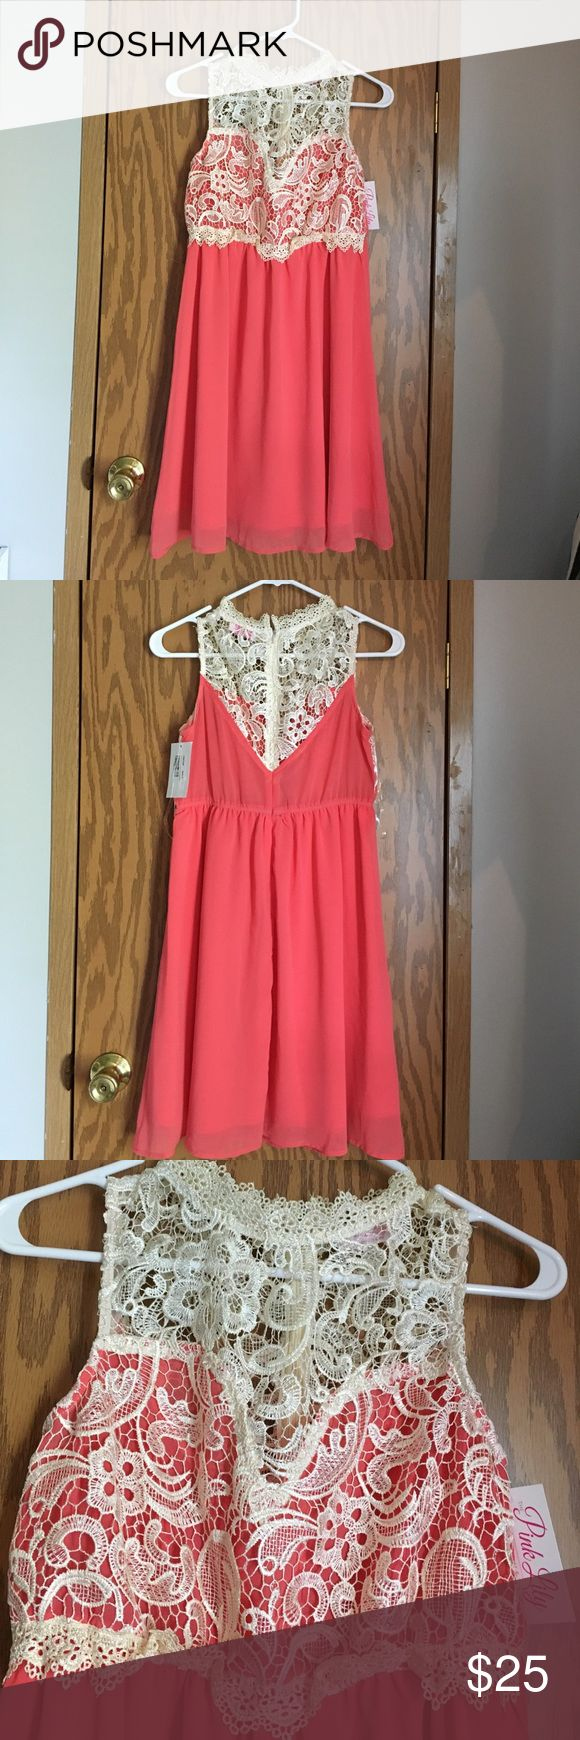 Pink Lily Coral lace dress Never been worn! Still has the tags. Lace top and double lined coral skirt. Size Medium. Pink Lily Dresses Midi